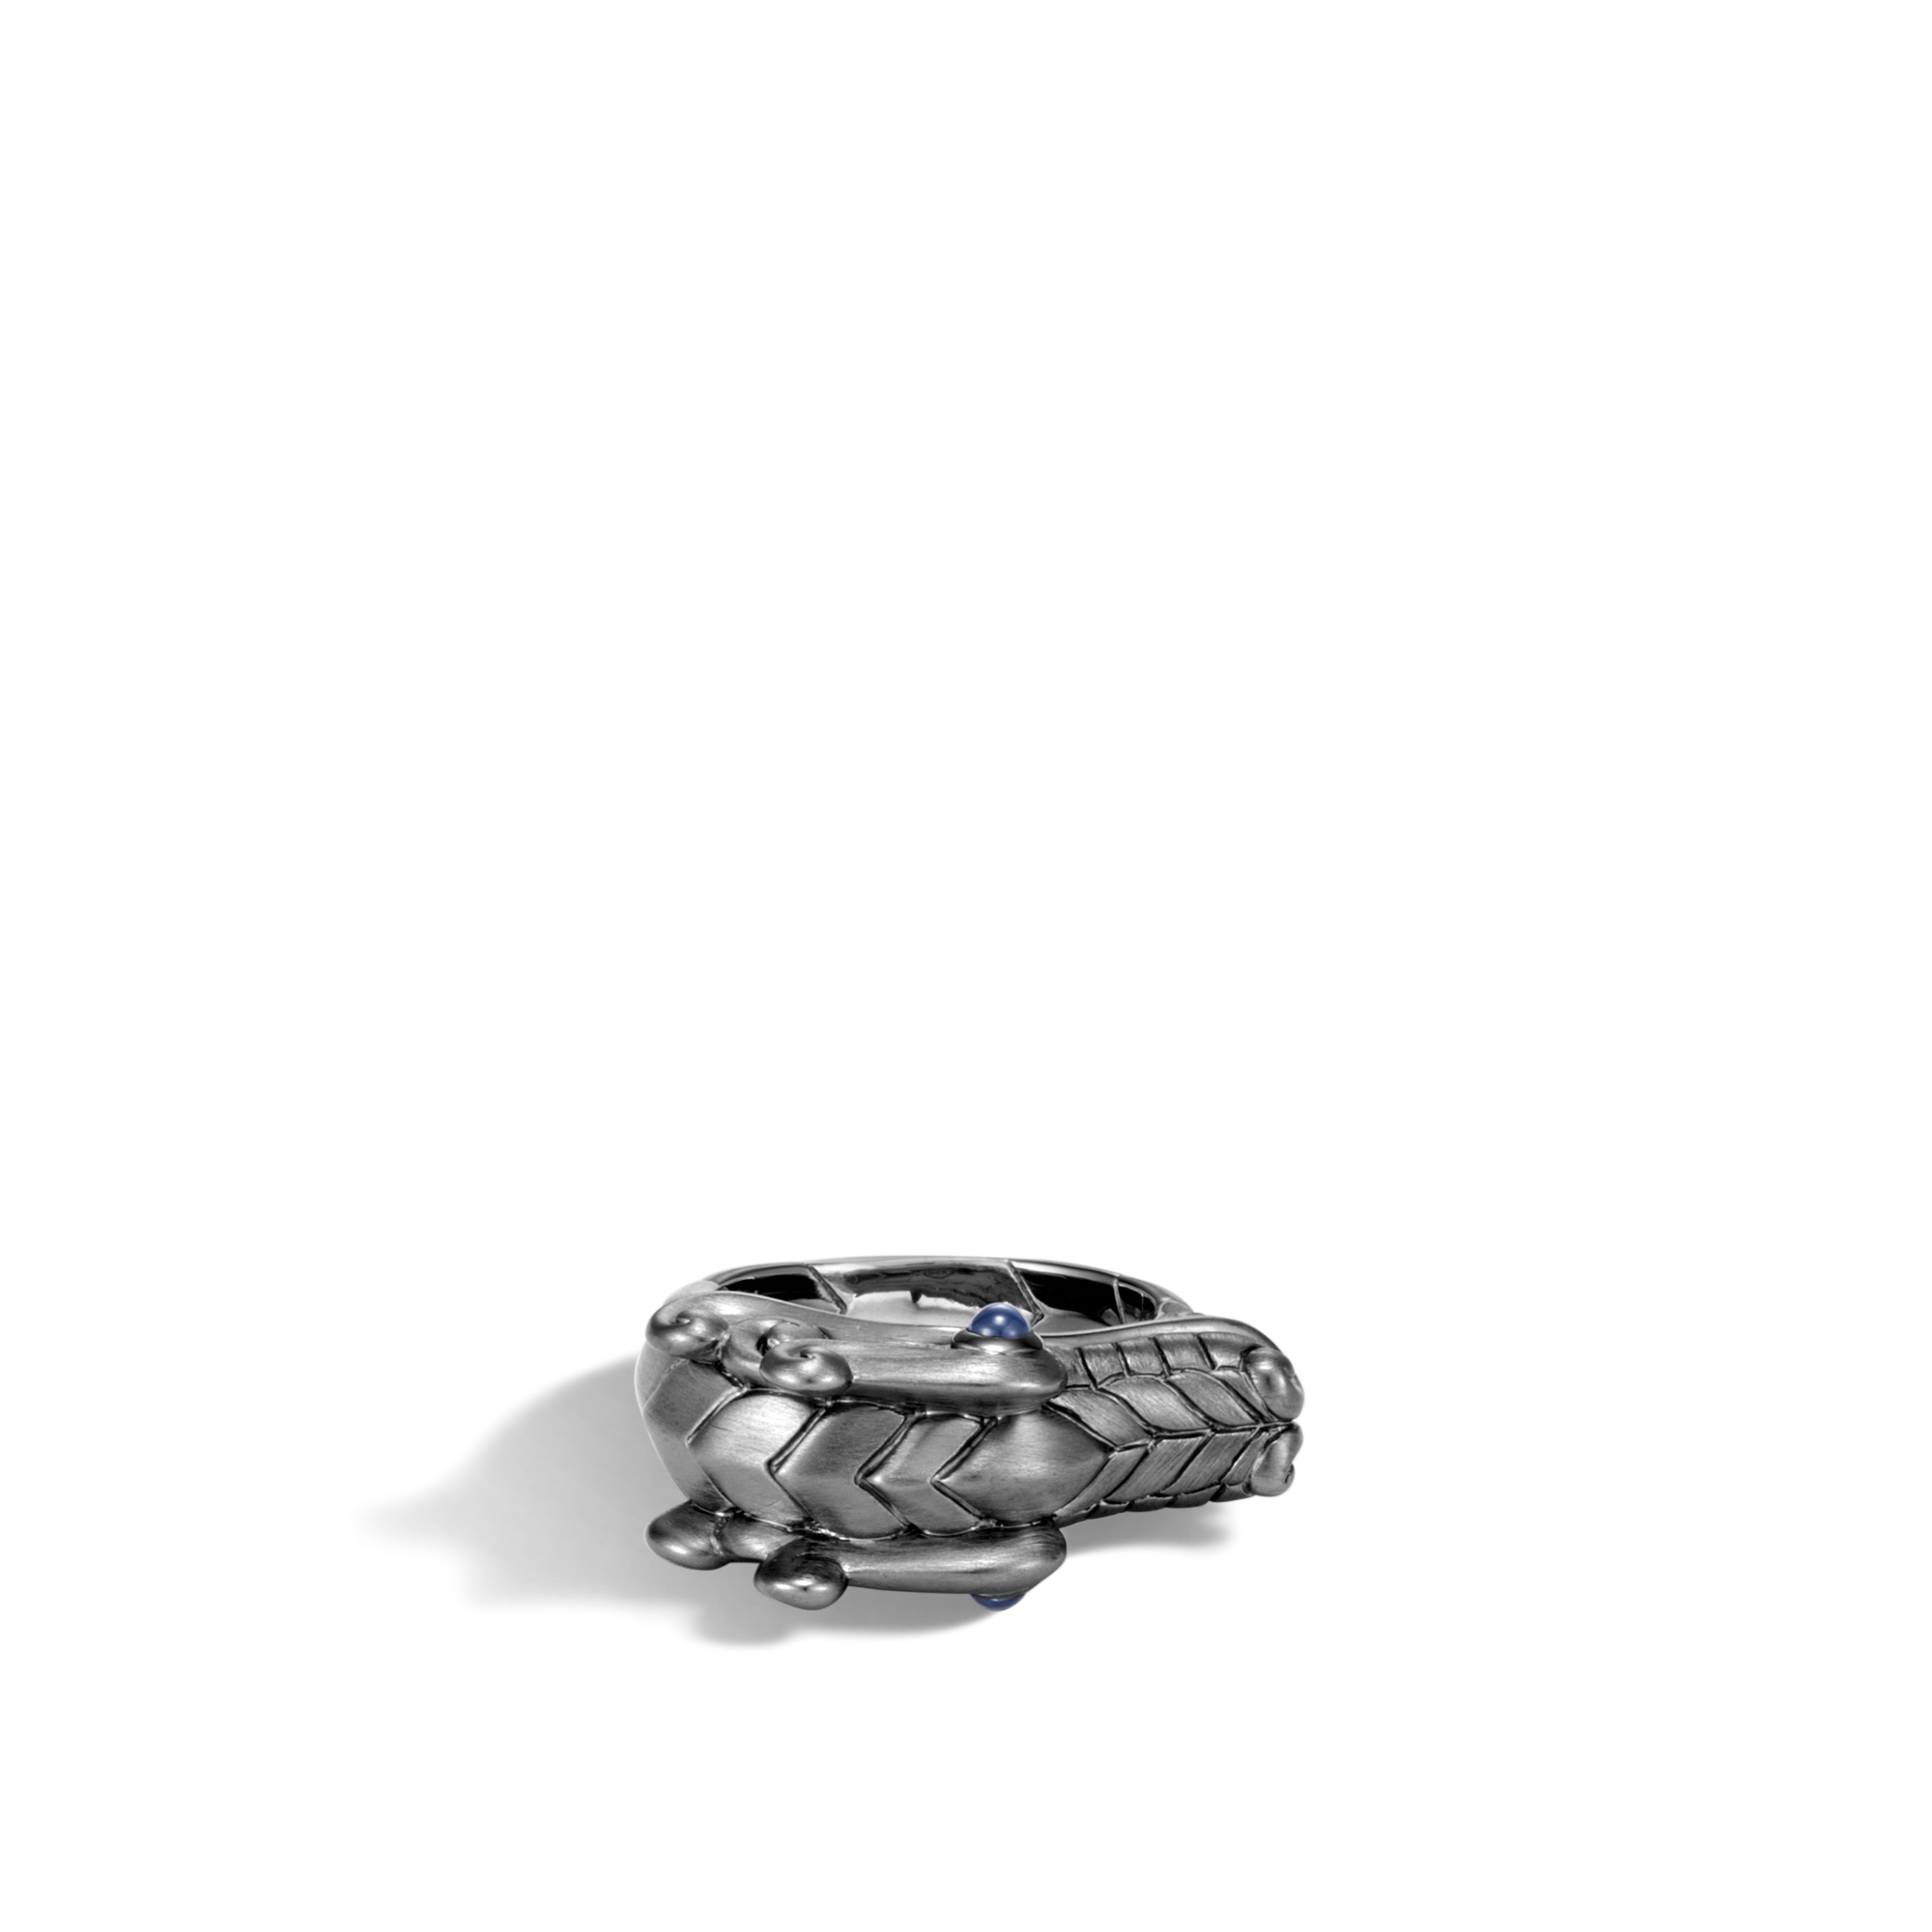 Legends Naga Ring in Blackened Silver, Blue Sapphire, large